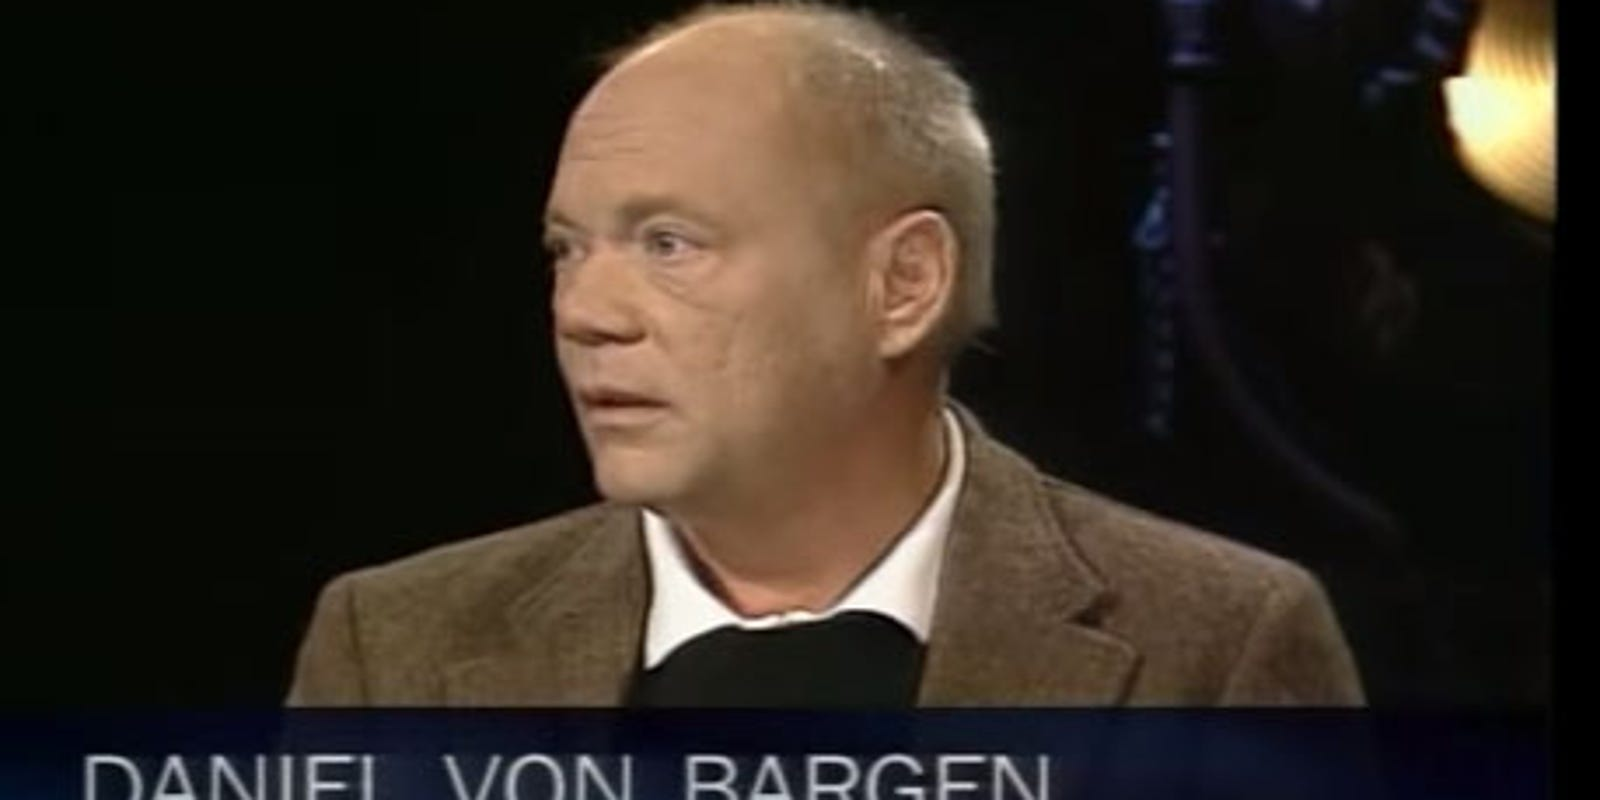 'Seinfeld' actor Daniel von Bargen dies at 64